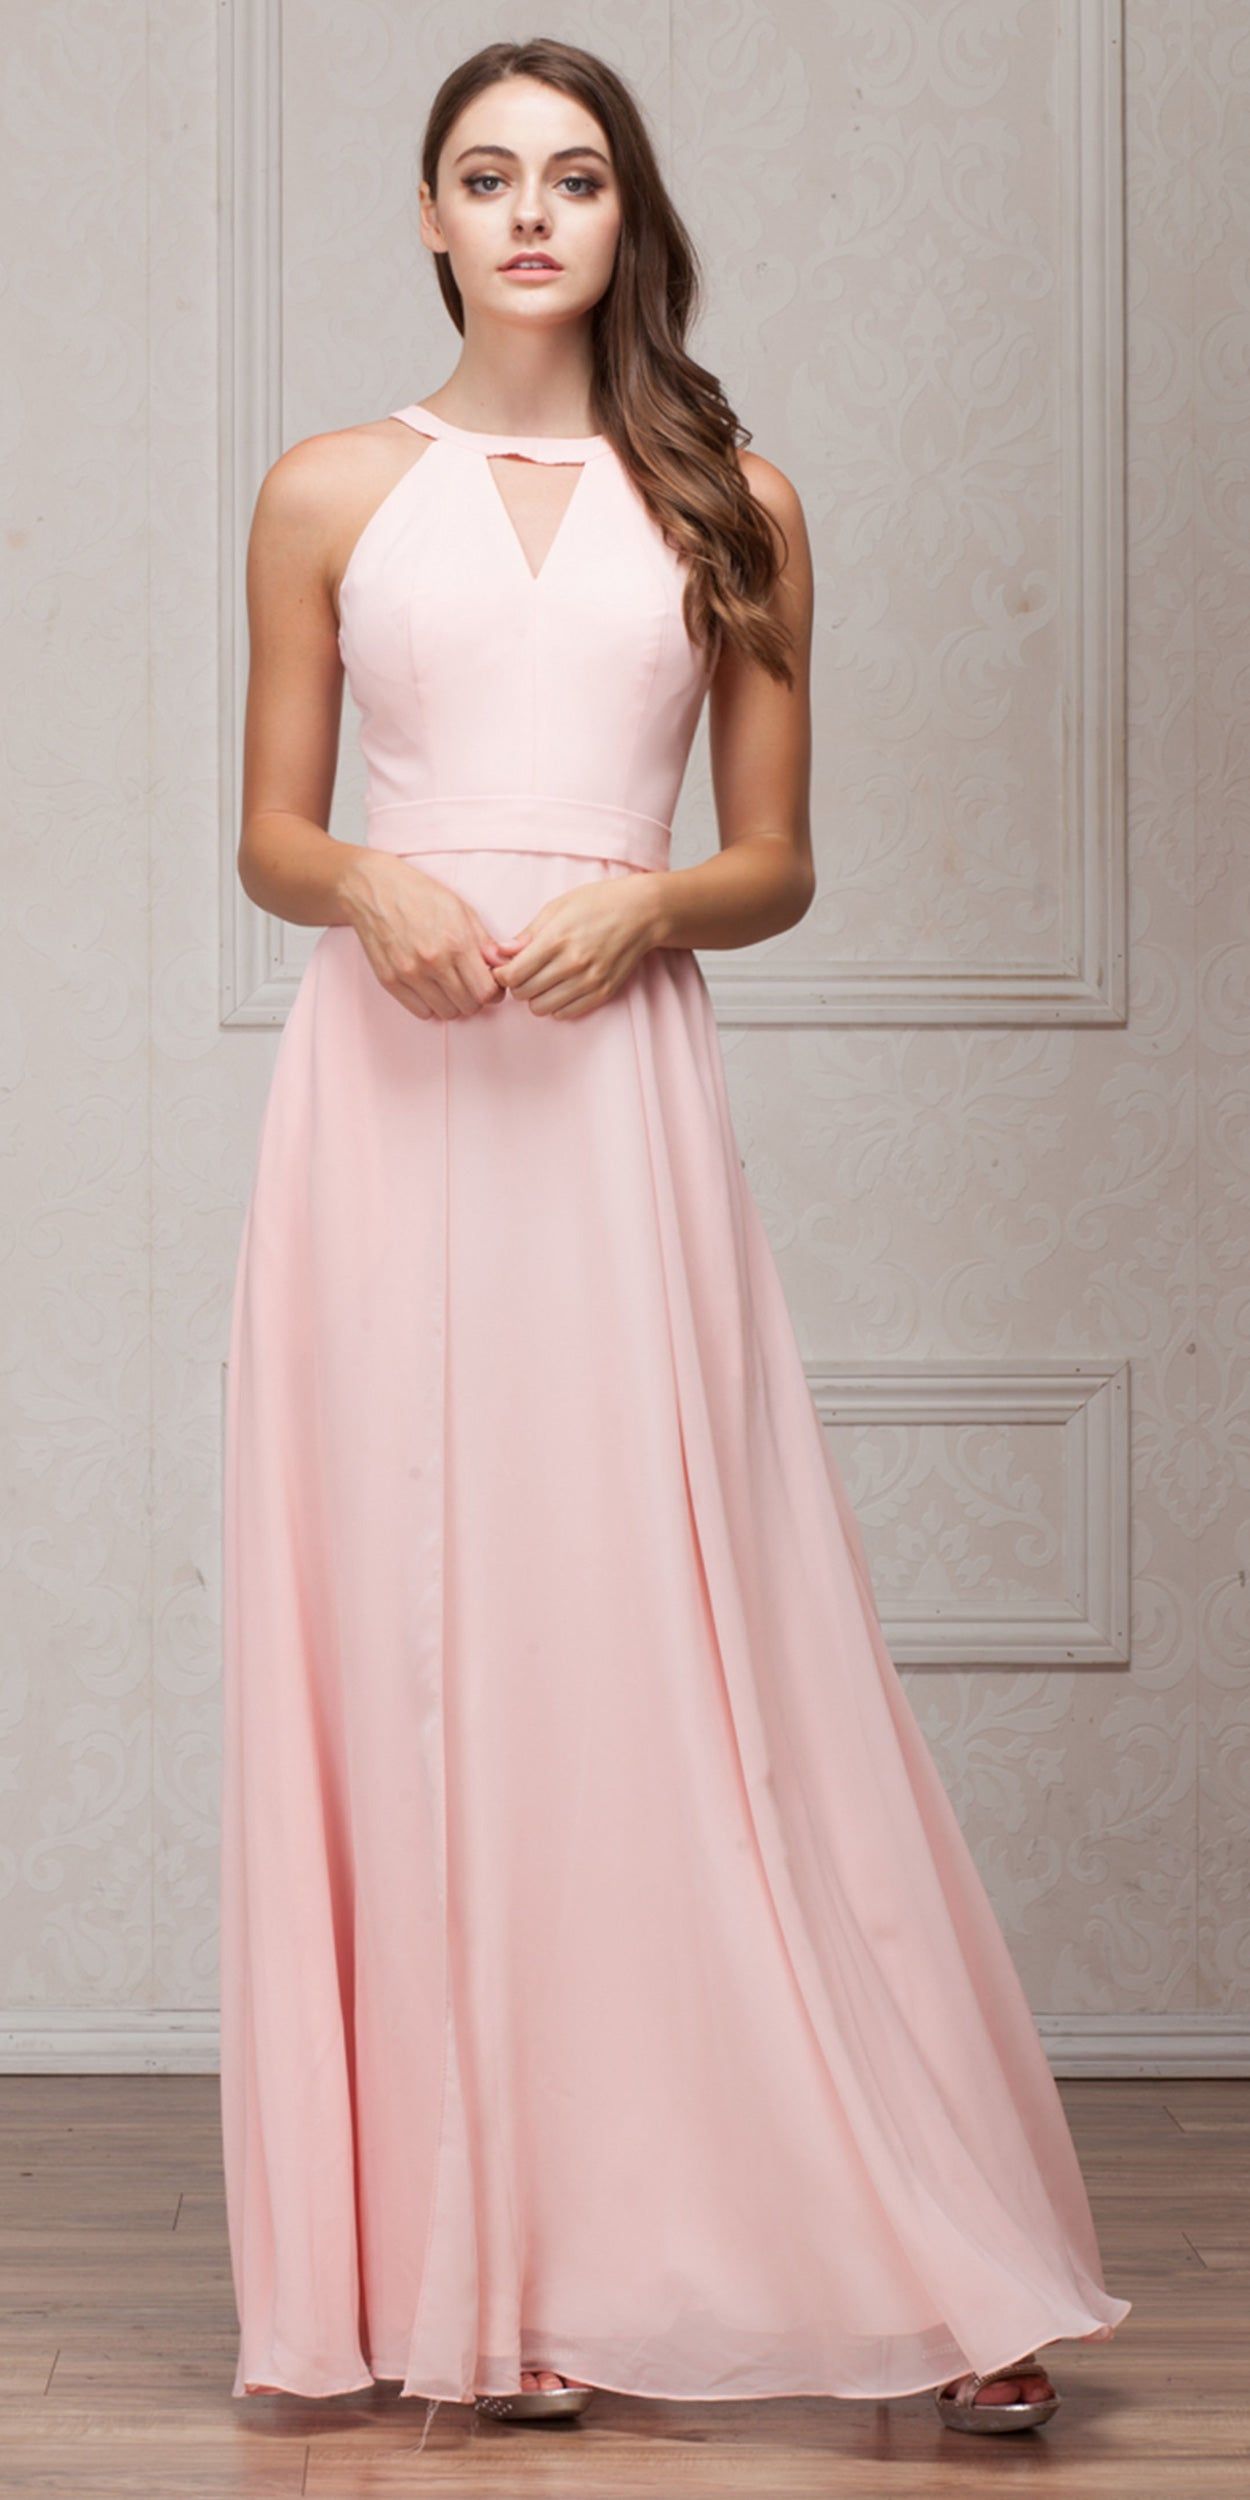 Image of High Round Neck Princess Cut Long Bridesmaid Dress in Blush